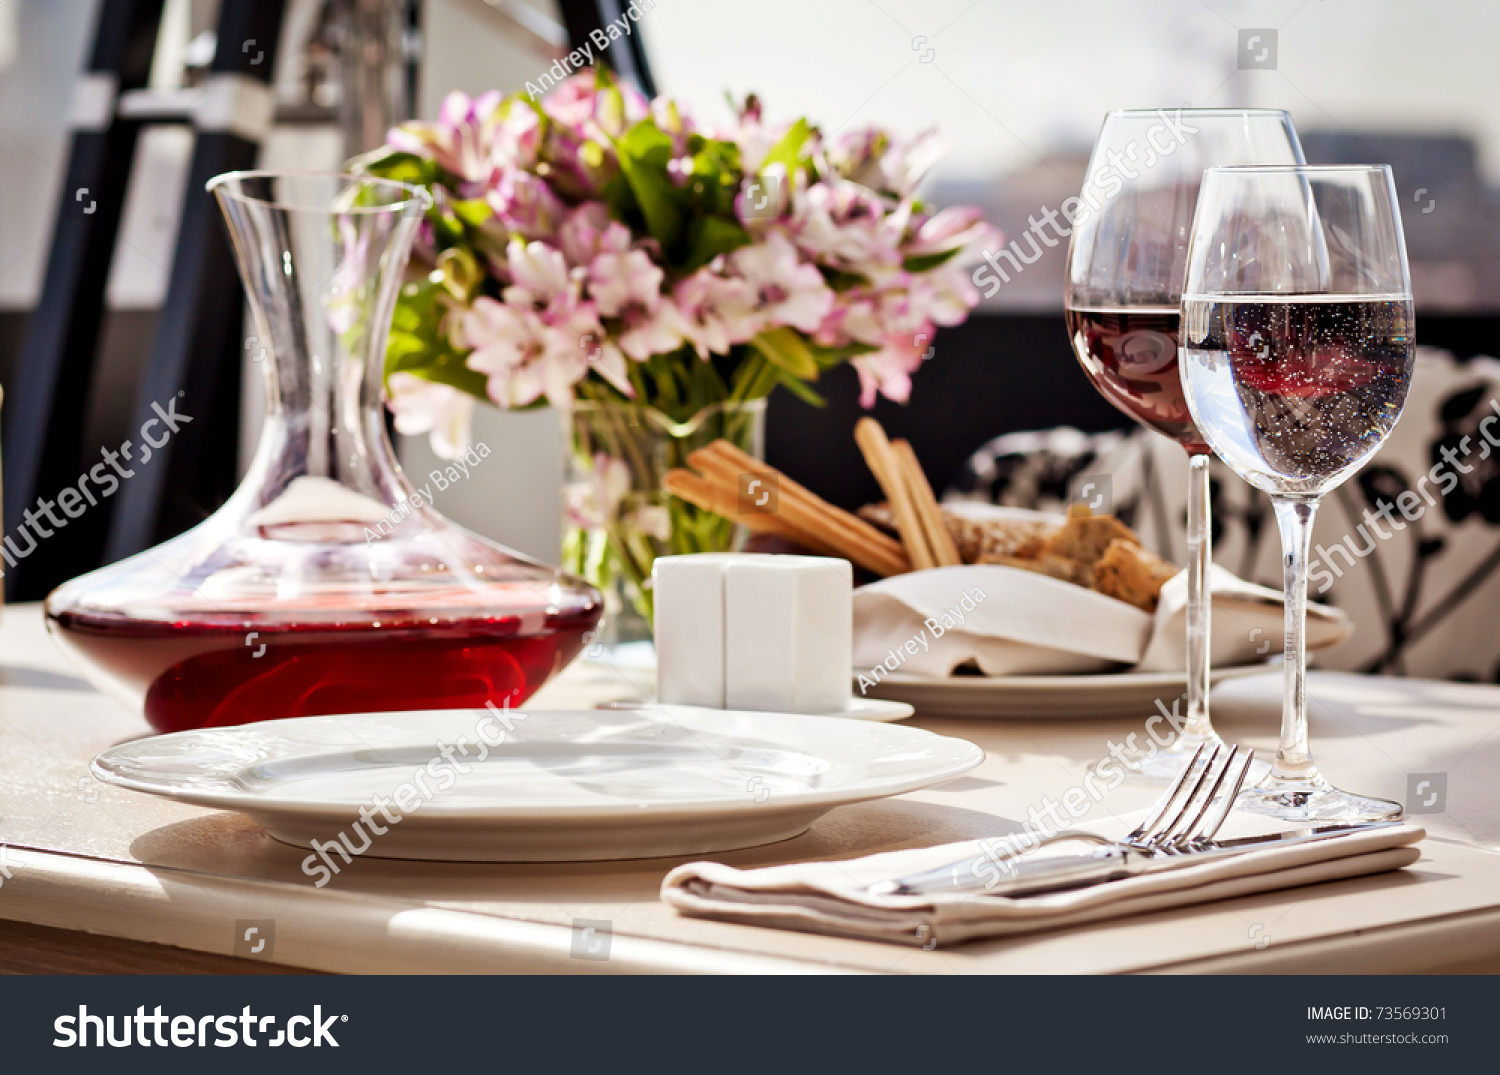 Fancy restaurant table setting - Fine Restaurant Dinner Table Place Setting Napkin Wineglass Plate Bread And Flowers